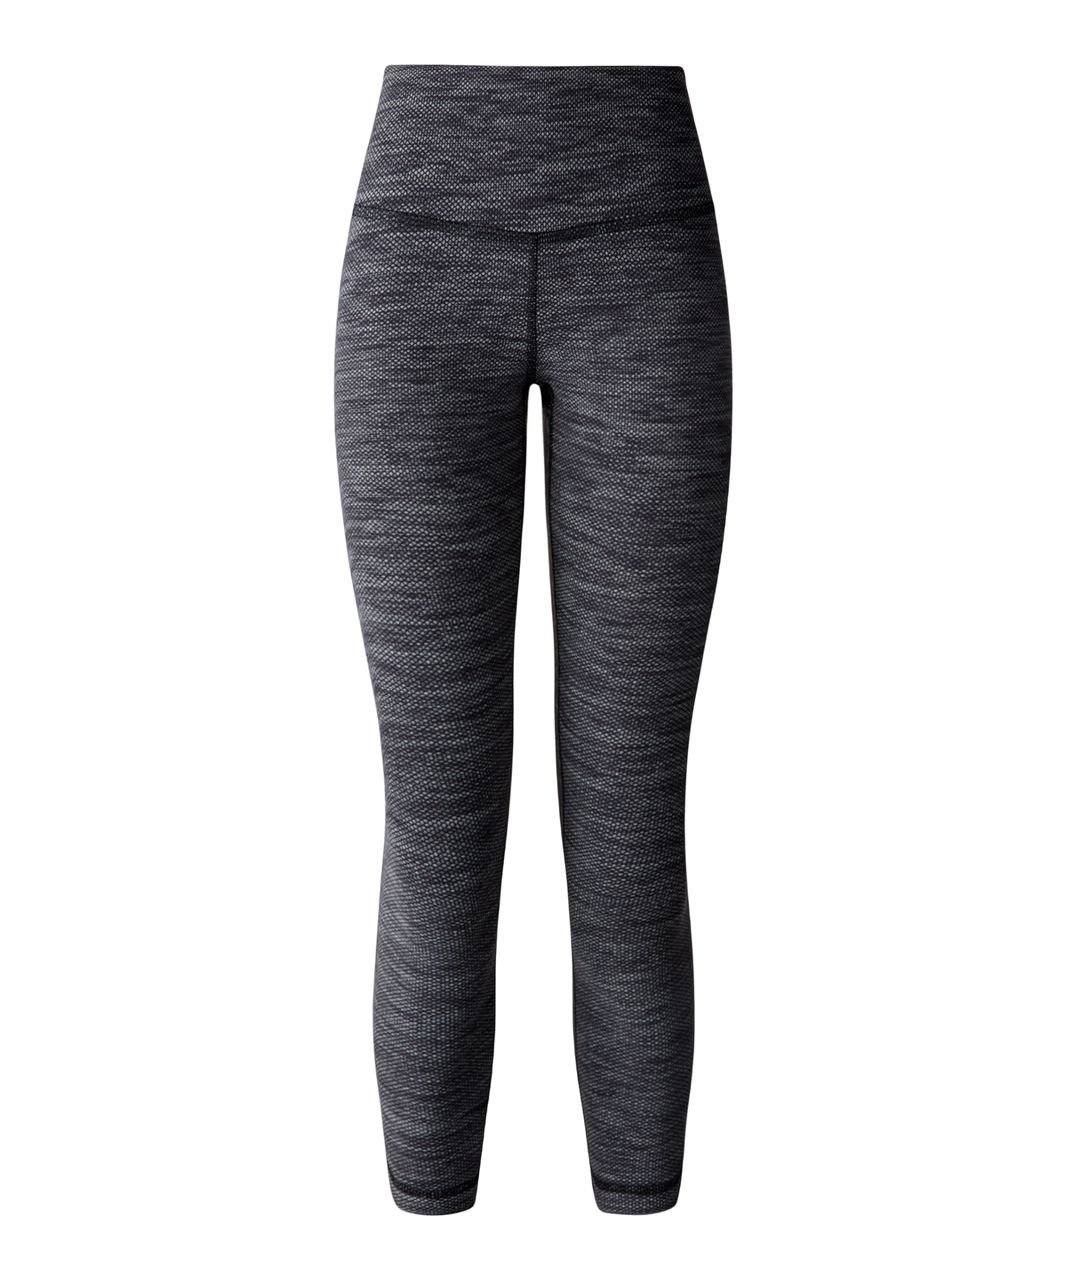 Lululemon Wunder Under Crop II - Diamond Jacquard Space Dye Black Slate